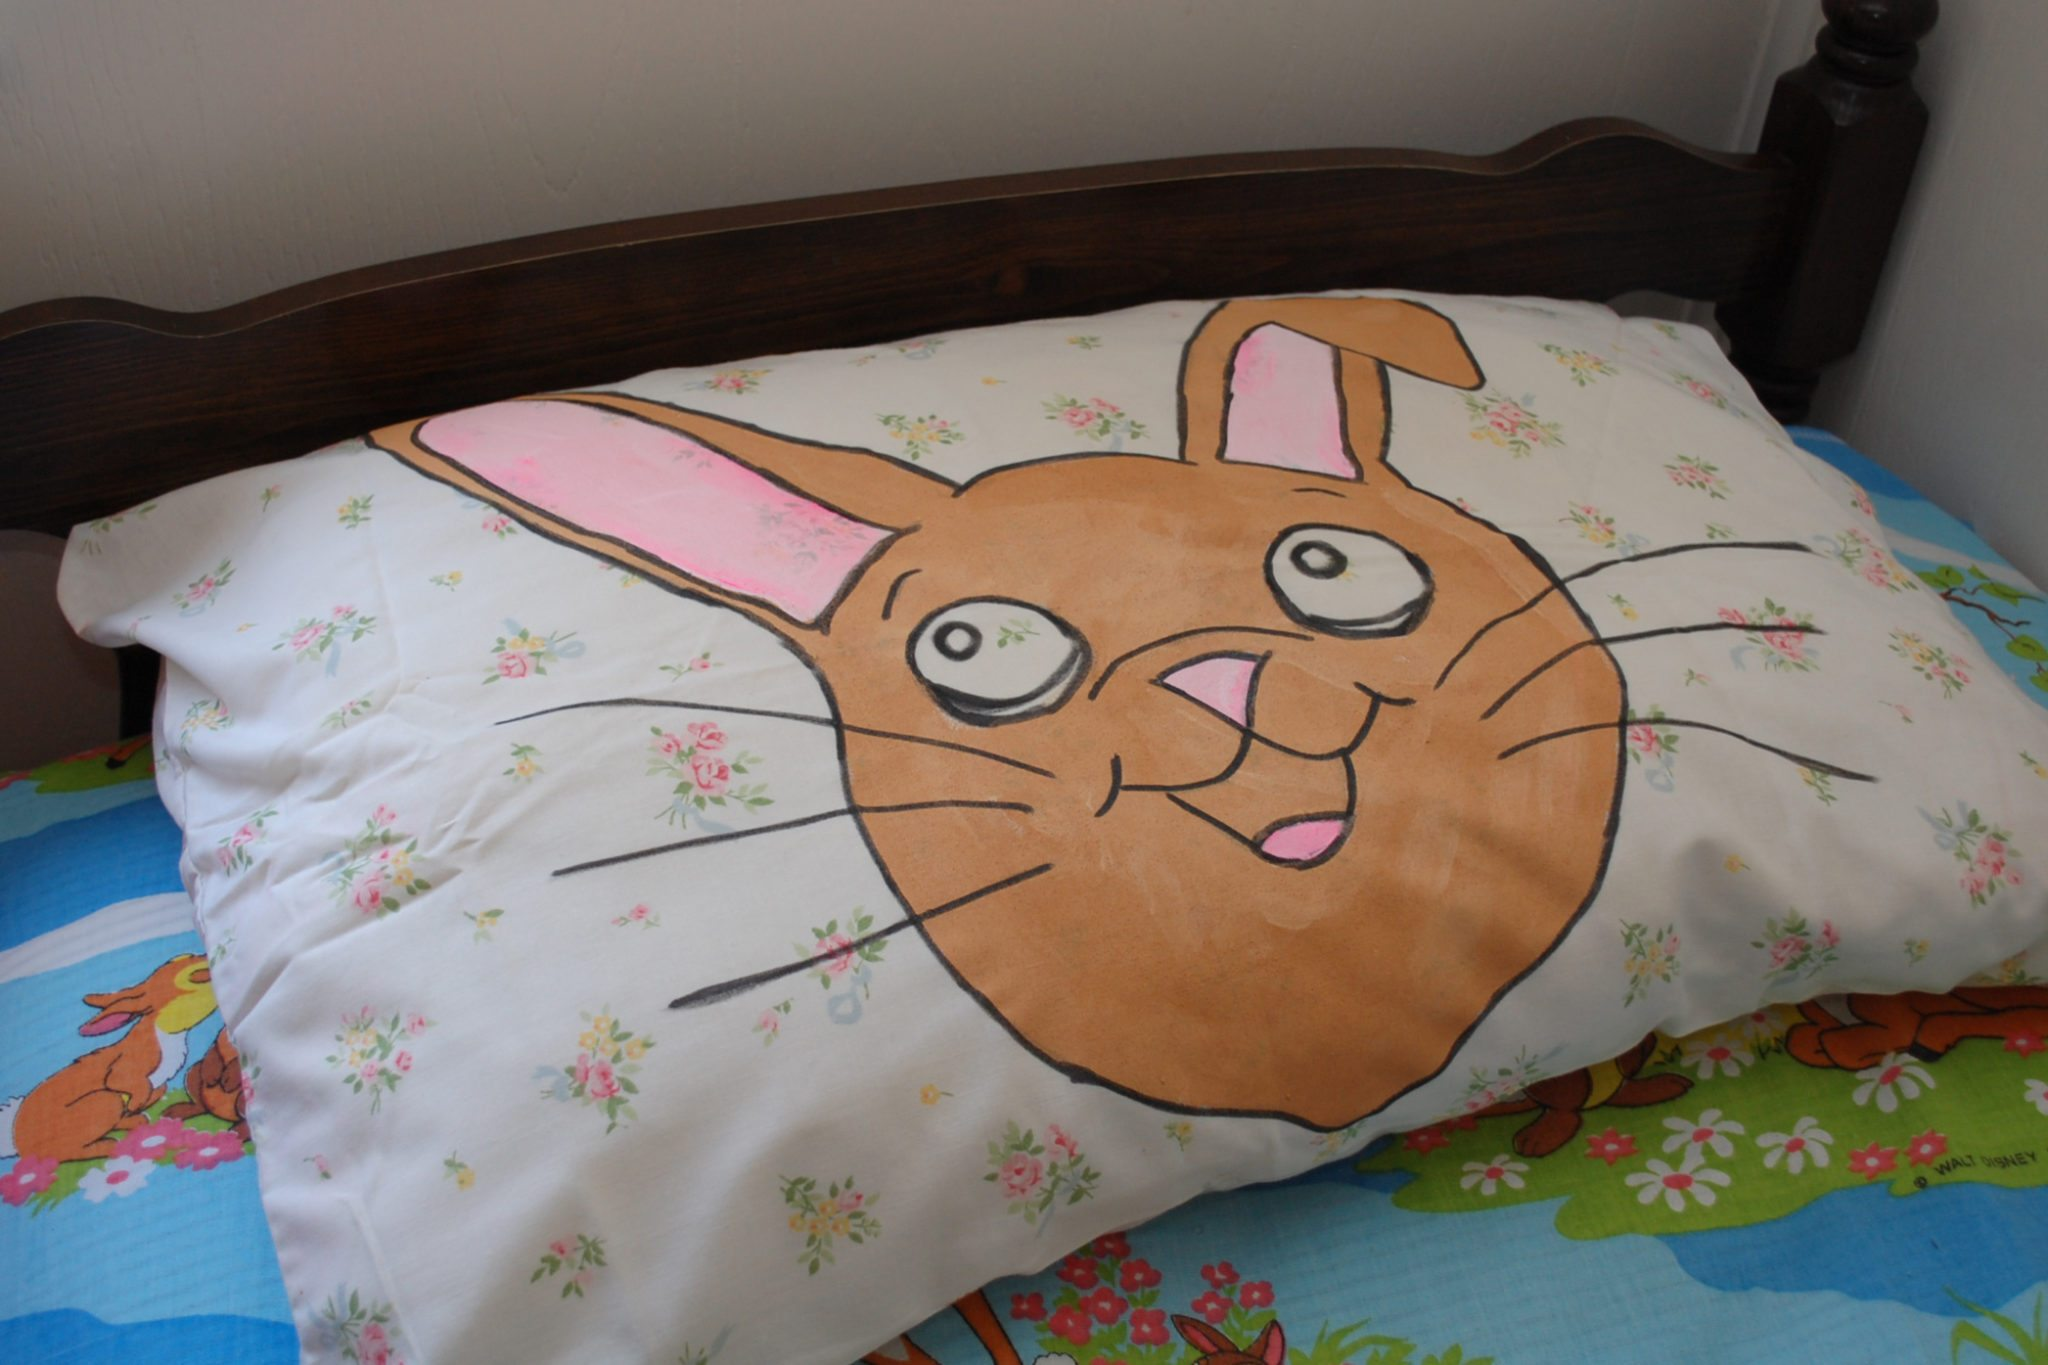 Give your pillowcases the Easter treatment with these painted bunnies by Jennifer Perkins